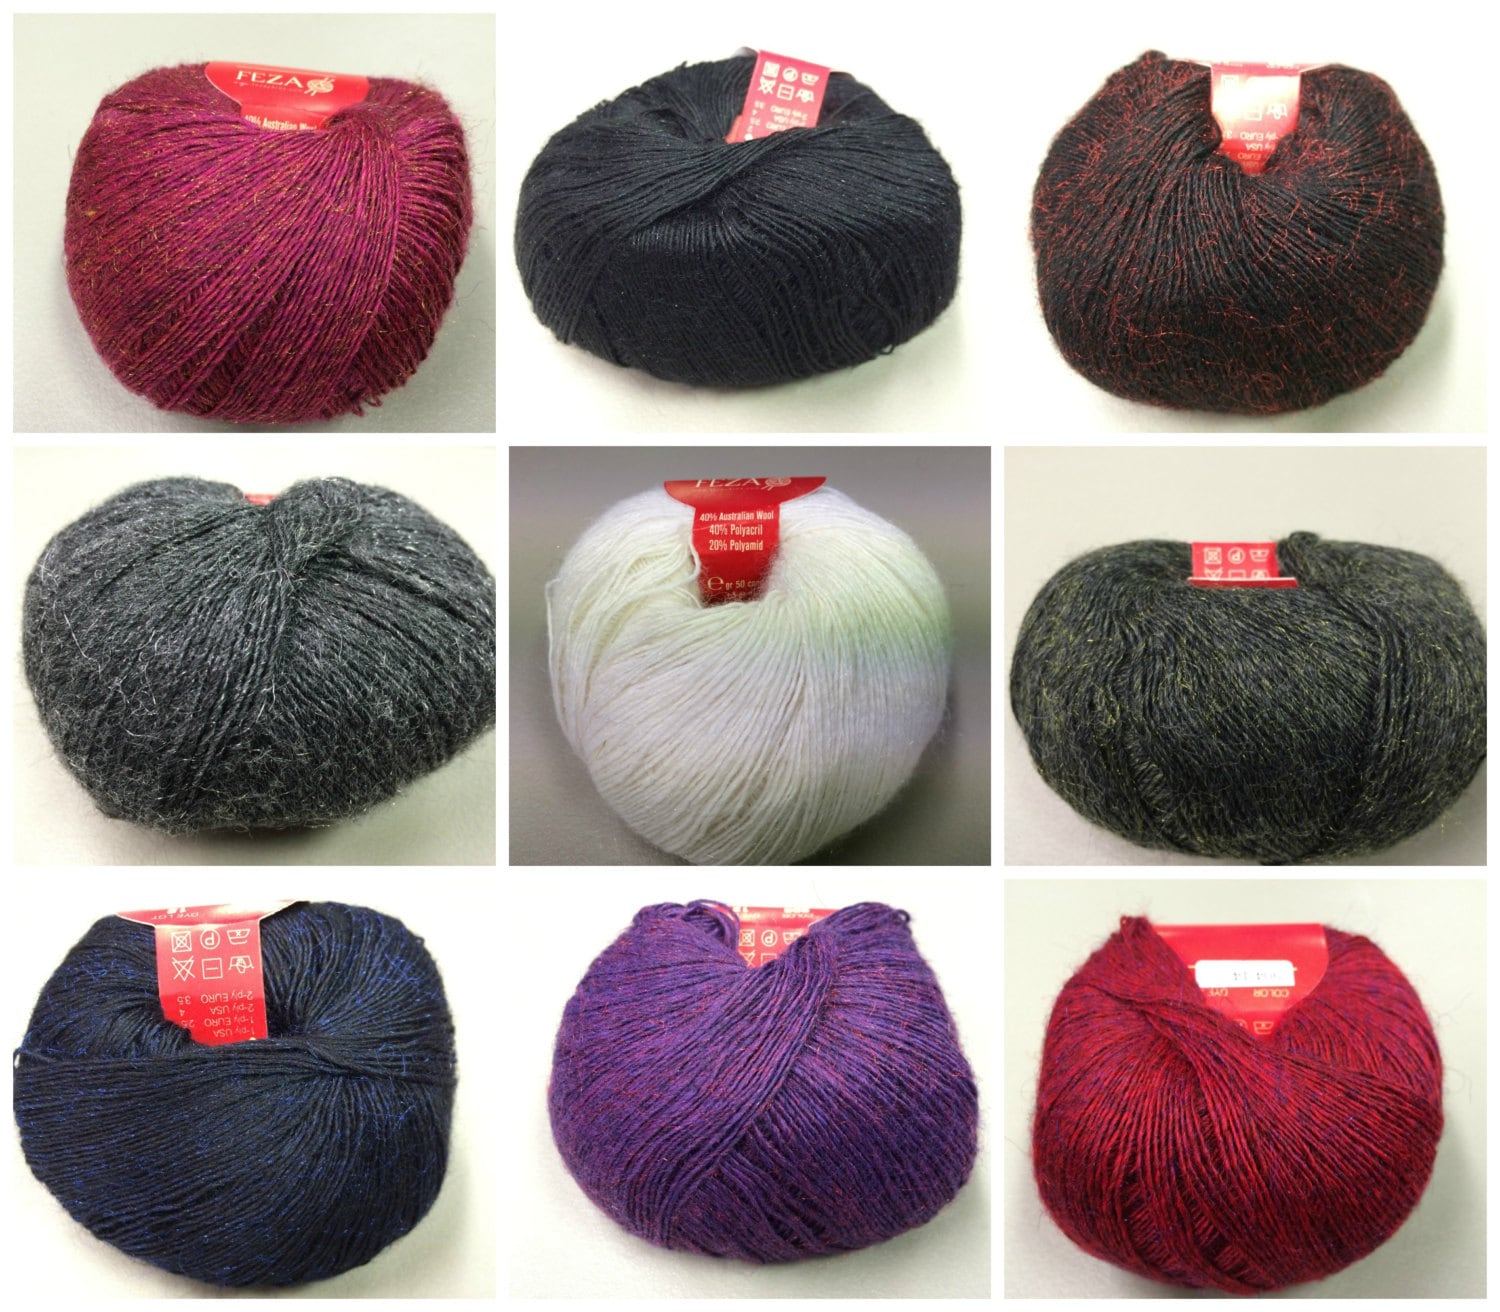 FEZA NICO YARN Luxury Australian Merino Blend by WoollyWoolly